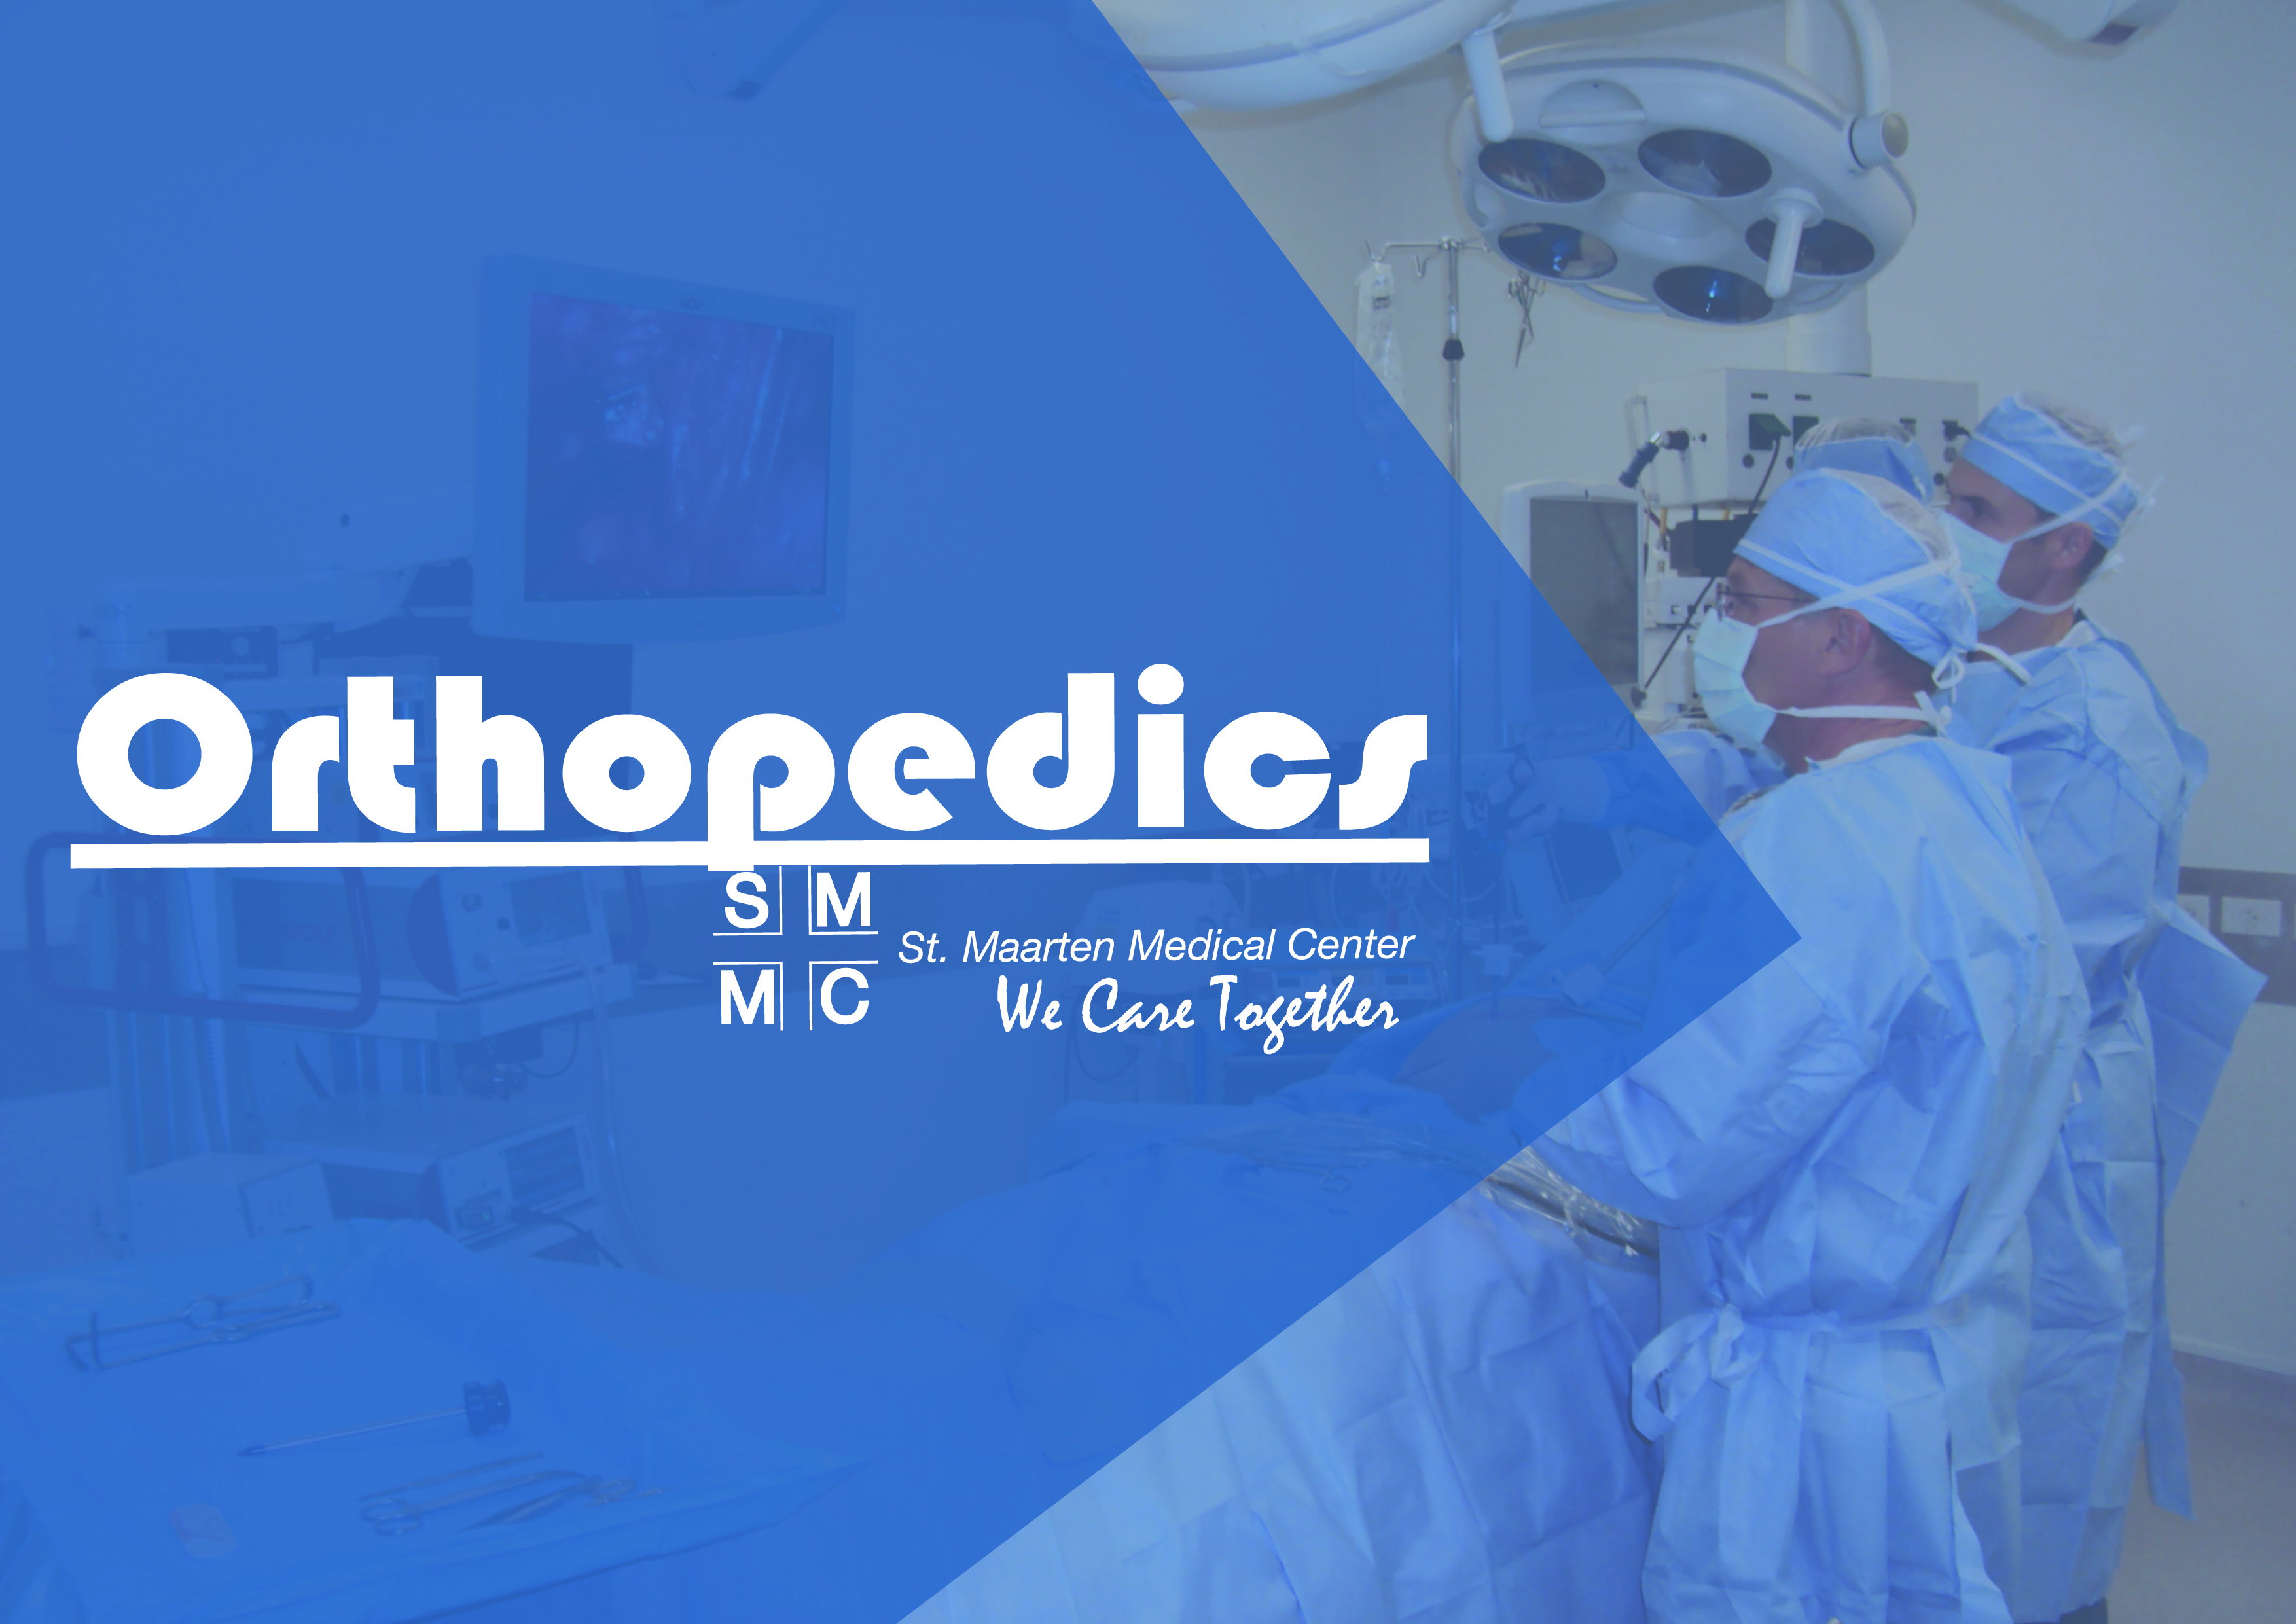 seeing the orthopedic surgeon essay Essay on orthopedic surgeon, neurologist, and plastic surgeon - in life there are an infinite number of career opportunities for people to pursue in so many different, vast, and constantly evolving fields.